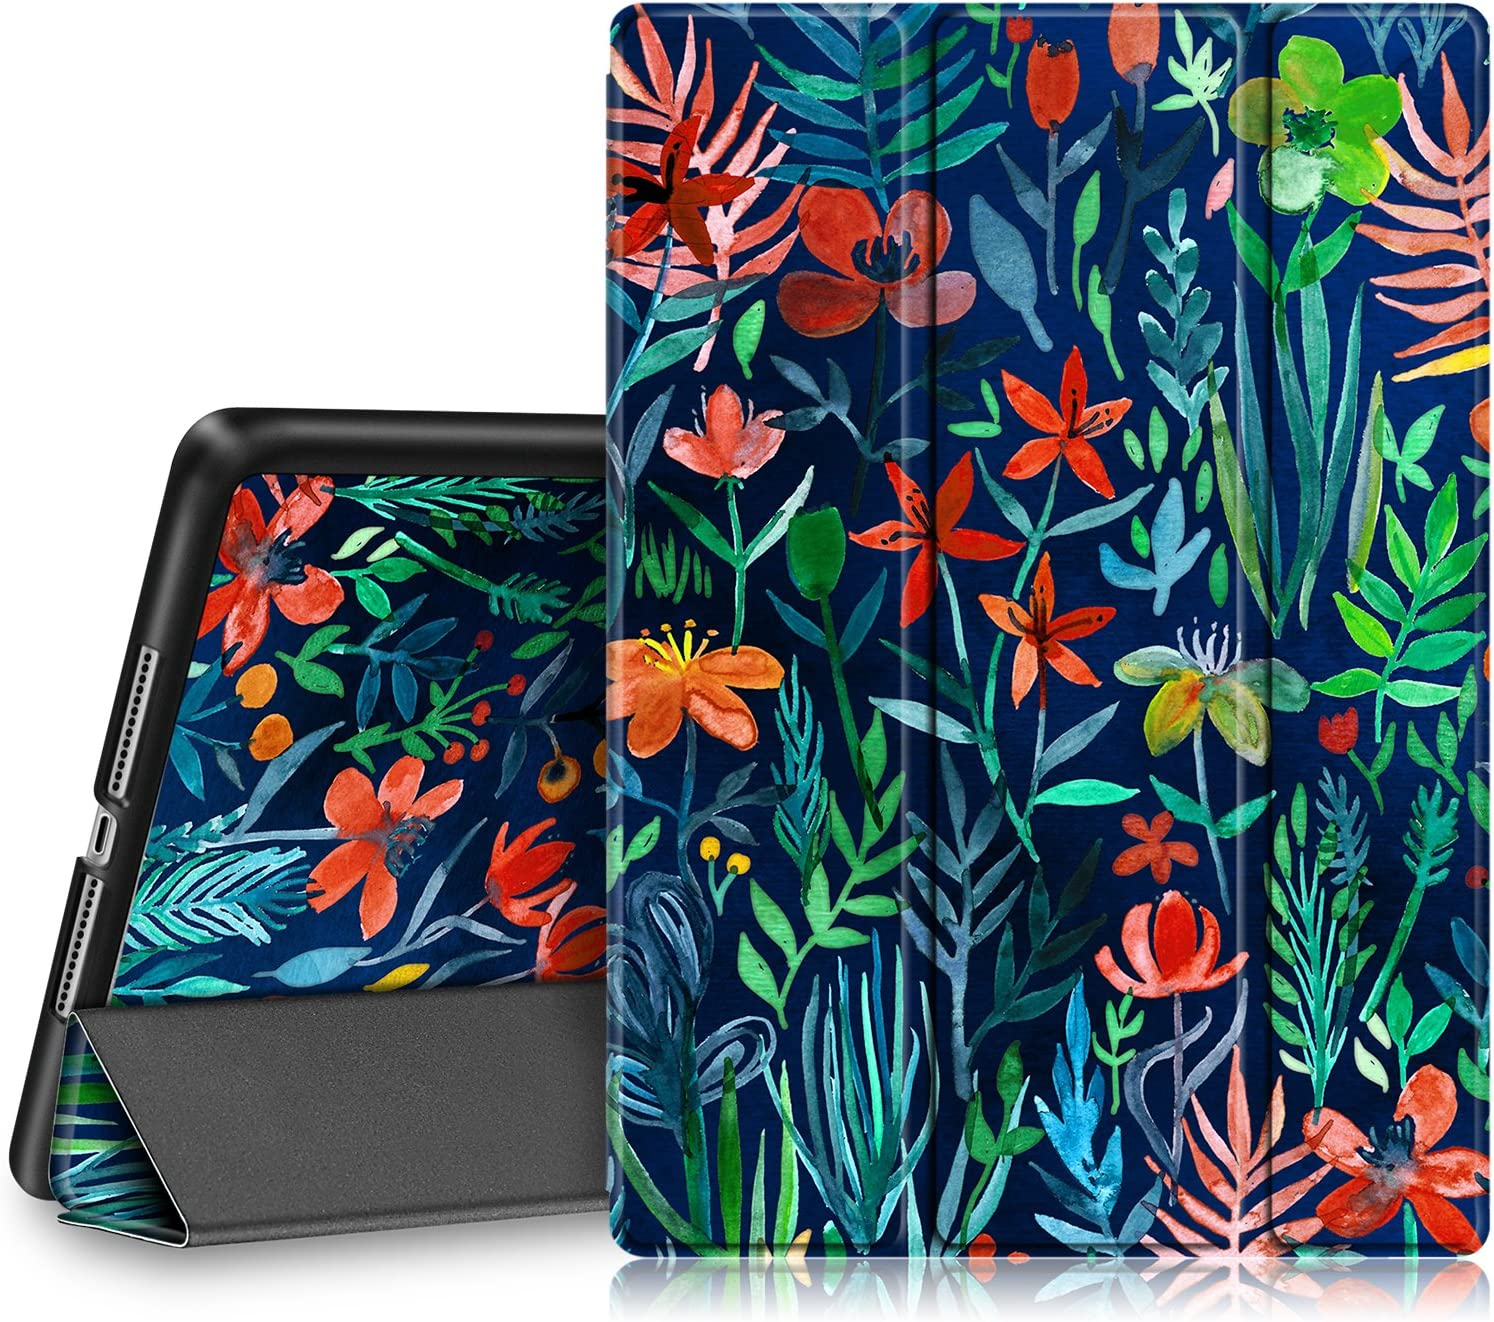 Fintie Case for iPad 9.7 2018/2017 - Lightweight Slim Shell Standing Cover with Auto Wake/Sleep Feature for iPad 6th / 5th Gen 9.7 Inch Tablet, Jungle Night